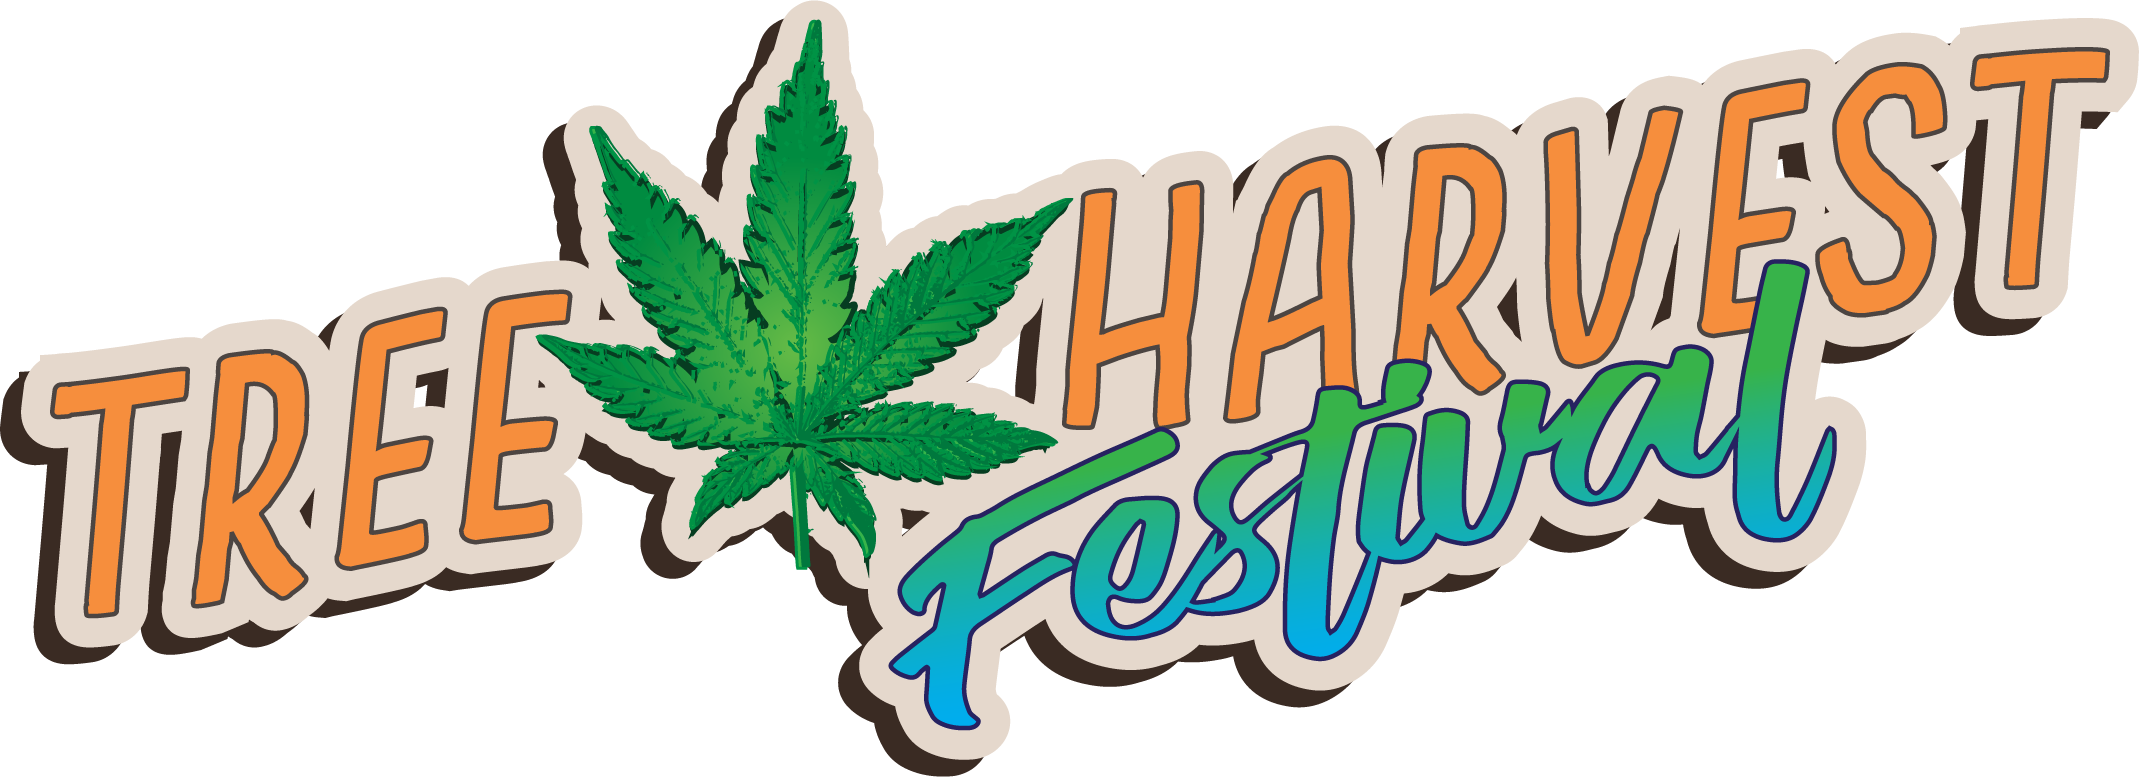 Tree Harvest Festival - Located in Sacramento at Cal Expo